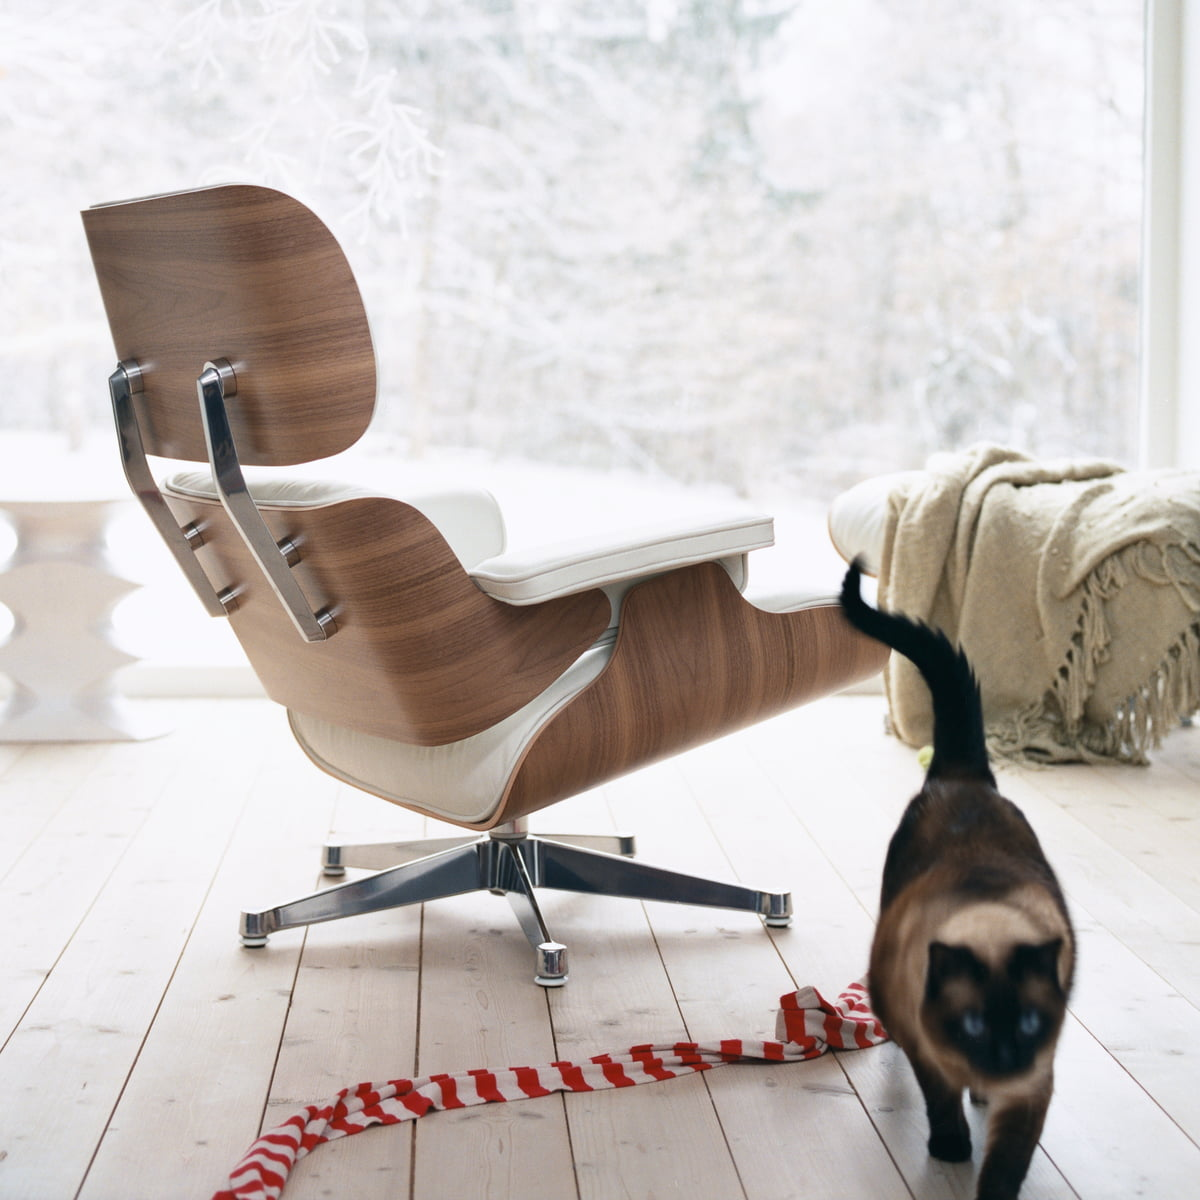 Vitra eames lounge chair ottoman walnut white for Vitra lounge chair nachbau